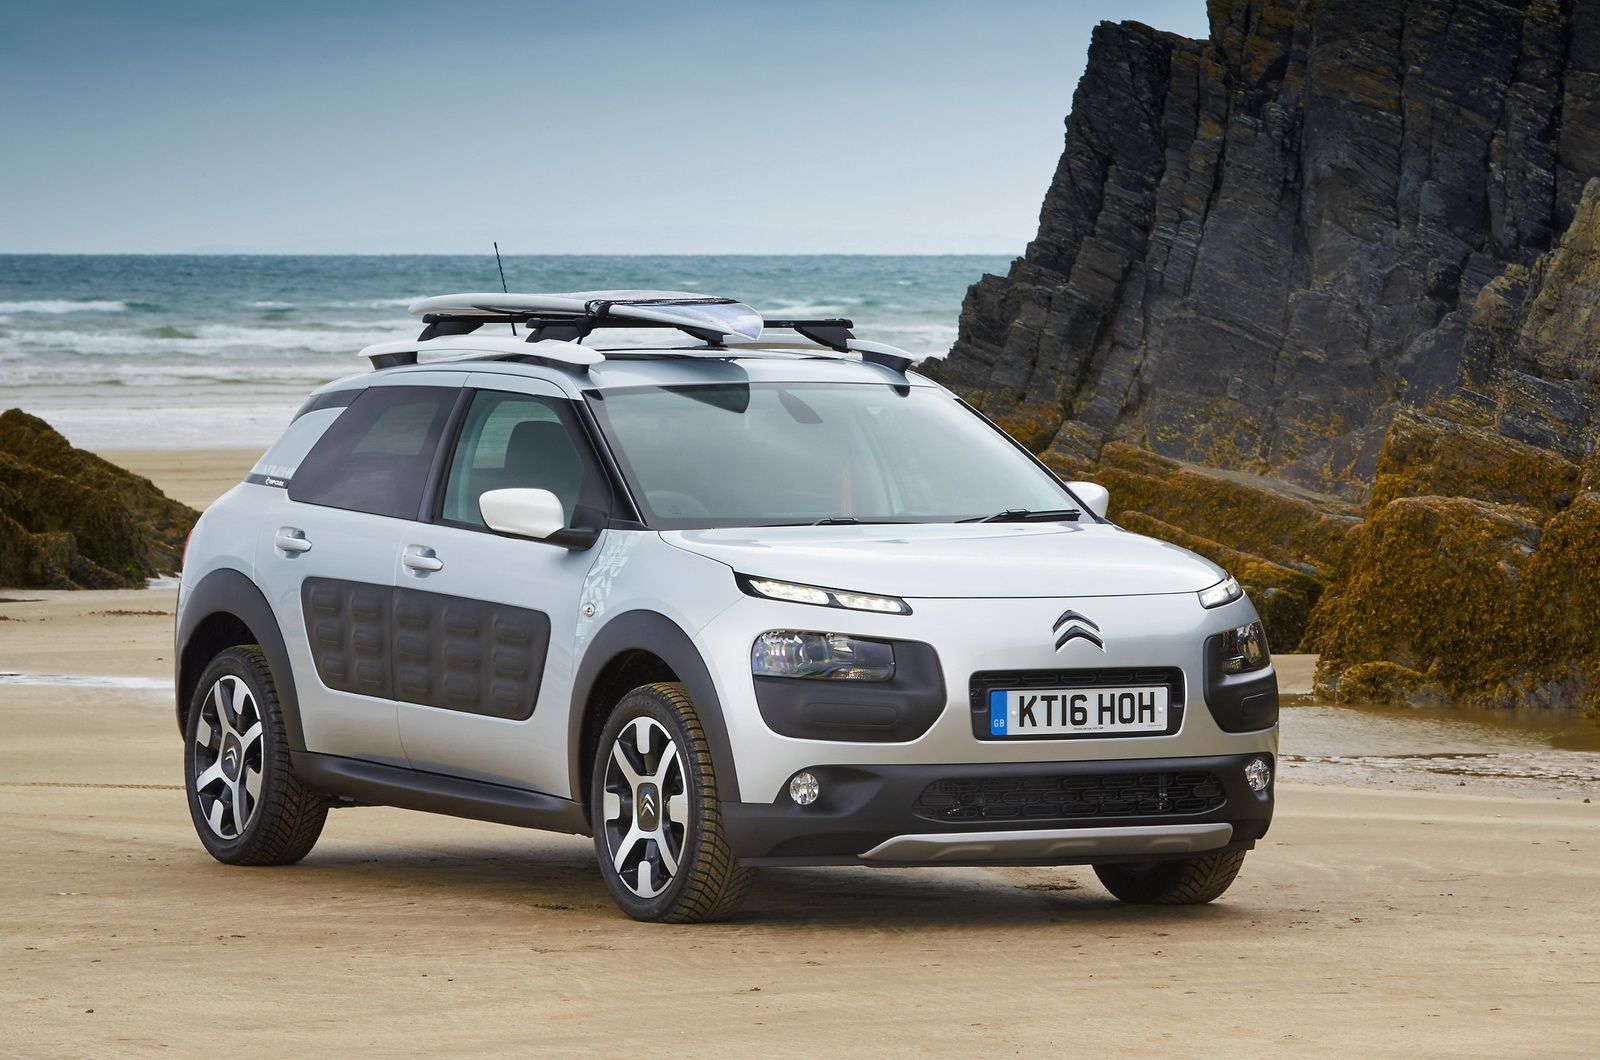 Ride The Waves With Citroen C4 Cactus Rip Curl Special Edition 46 Images Video Carscoops Citroen Citroën C4 Riding